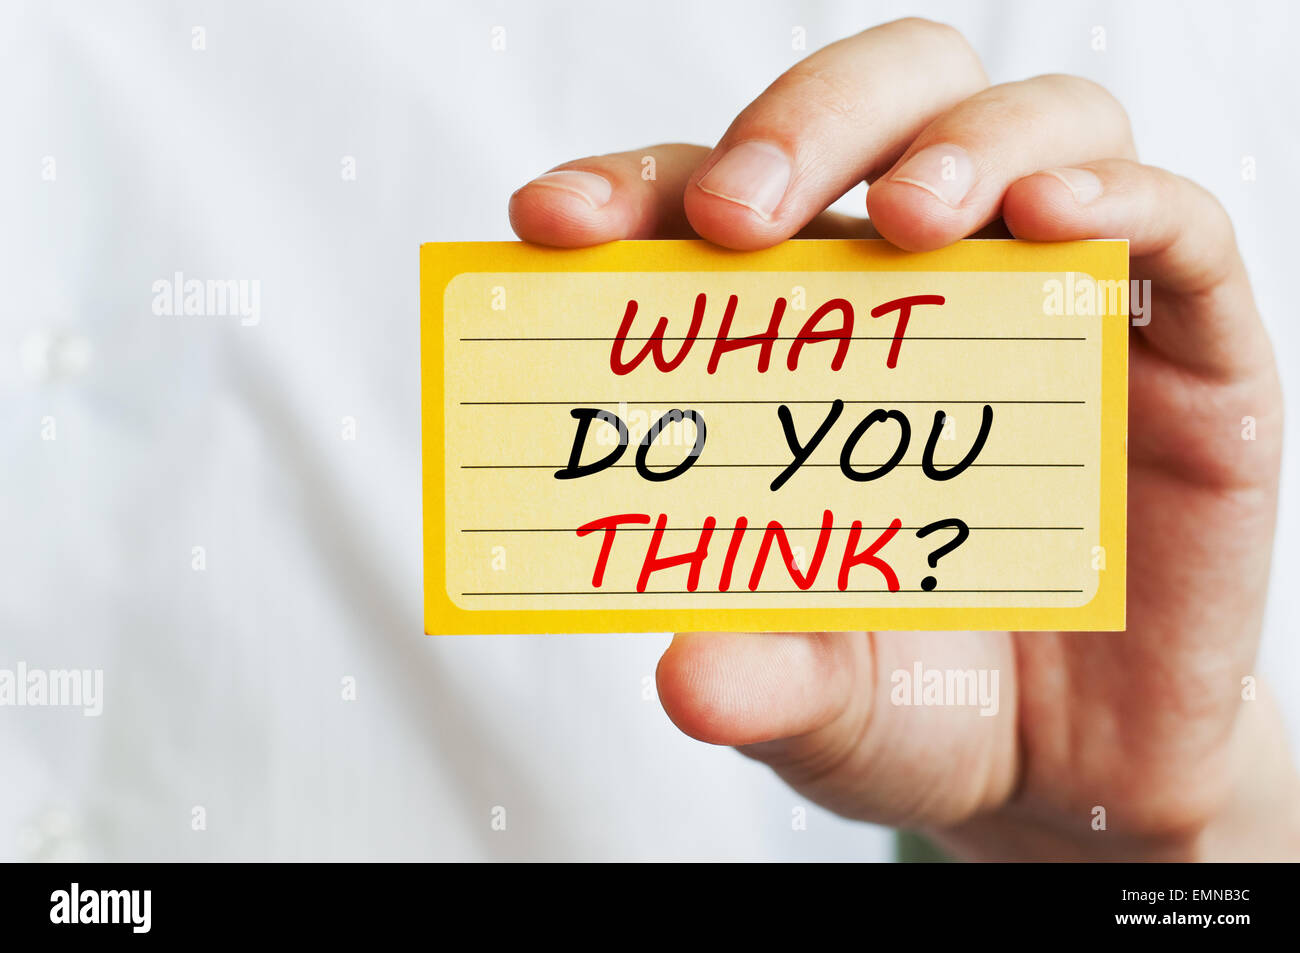 What Do You Think - Stock Image